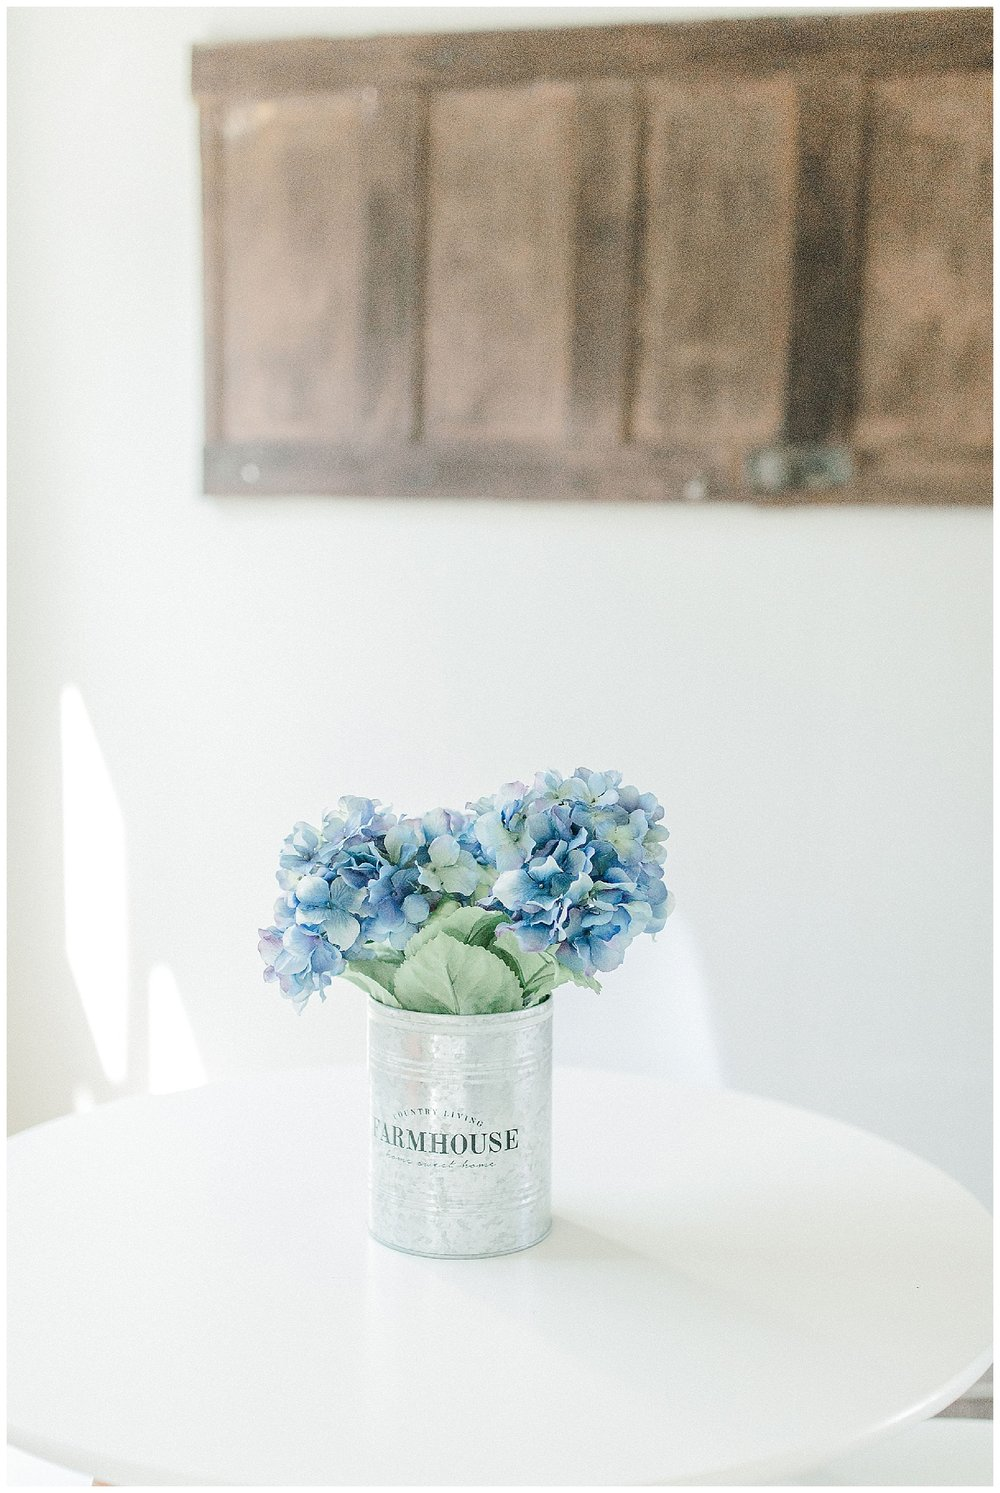 Emma Rose Company Branded Lifestyle Session | Seiler Home Group Real Estate Agents | Light and Airy Seattle and Portland Wedding Photographer | Real Estate Photo Shoot_0001.jpg